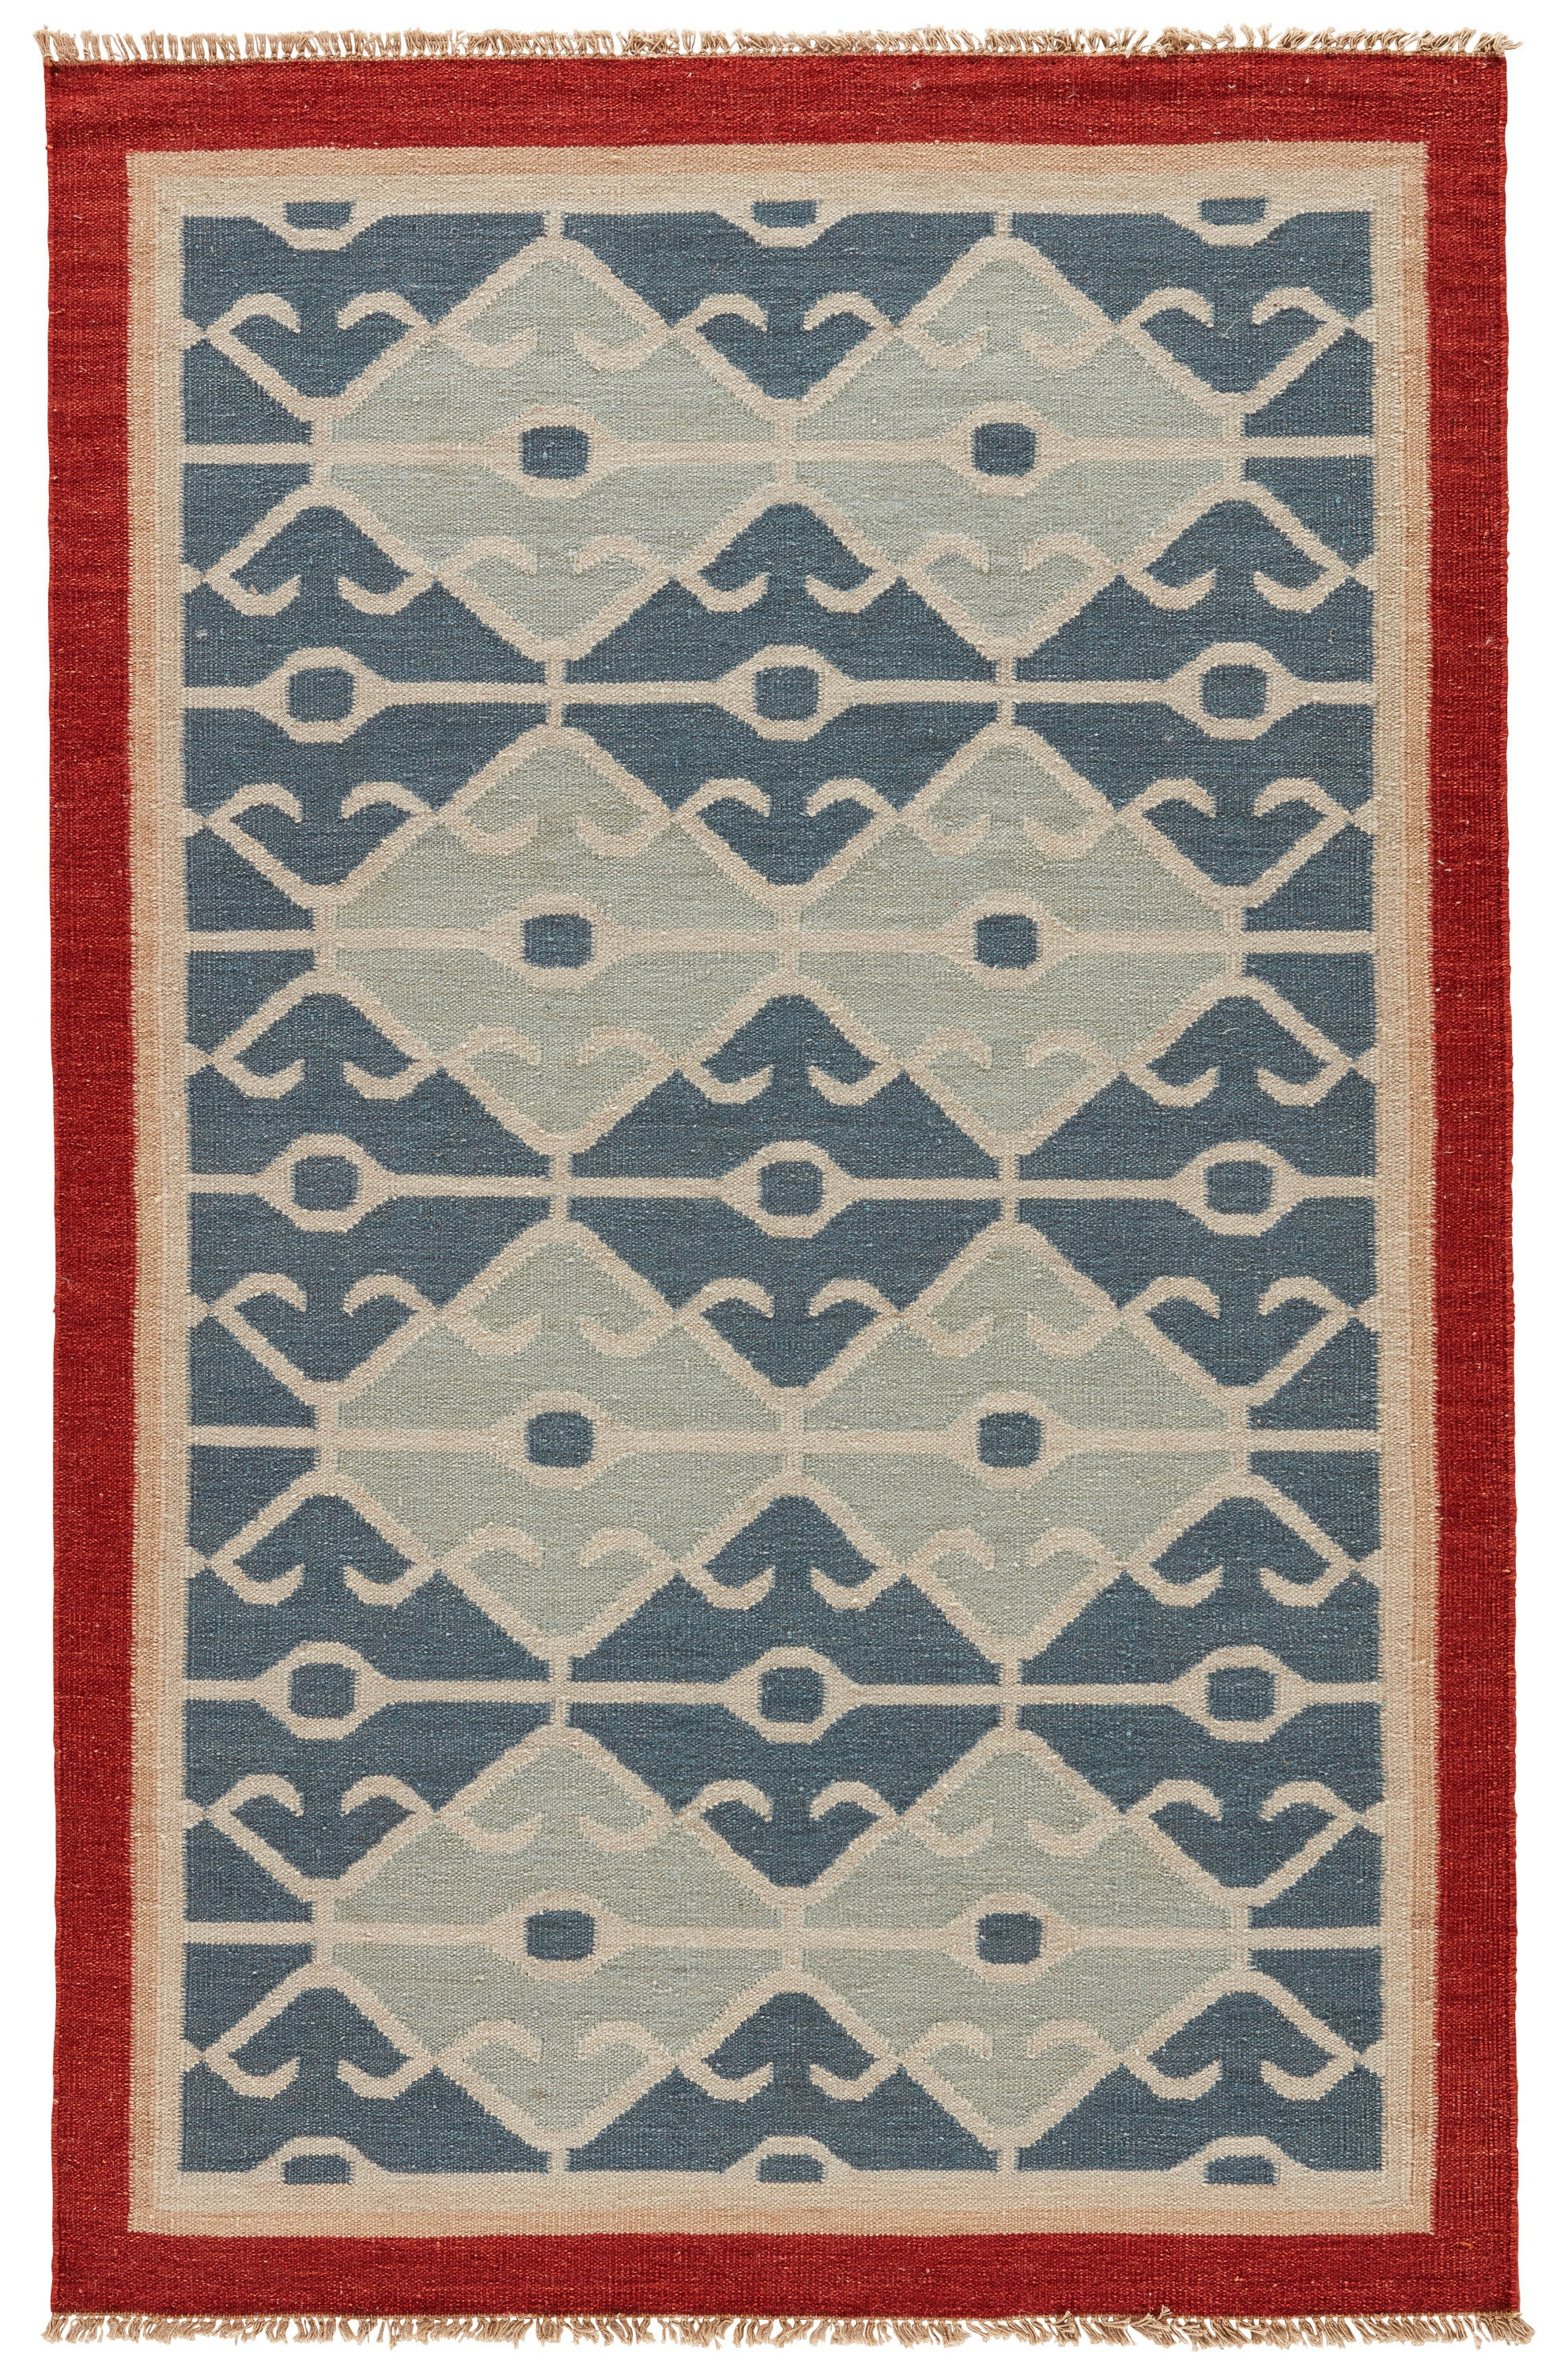 Rectangle Blue Geometric Dhurrie Wool Southwestern recommended for Bedroom, Living Room, Dining Room, Office